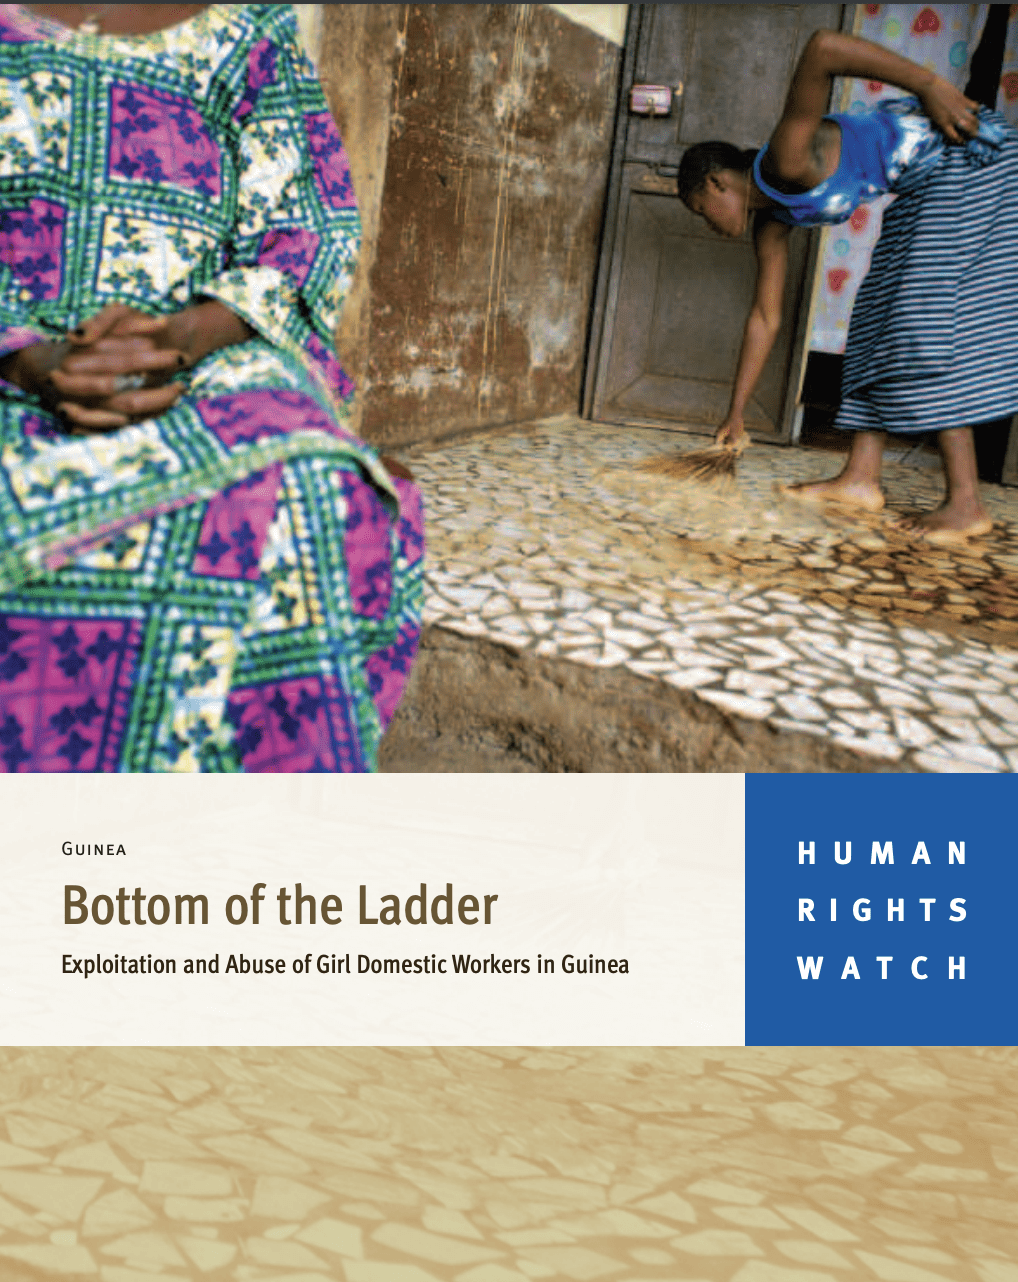 Bottom of the Ladder: Exploitation and Abuse of Girl Domestic Workers in Guinea